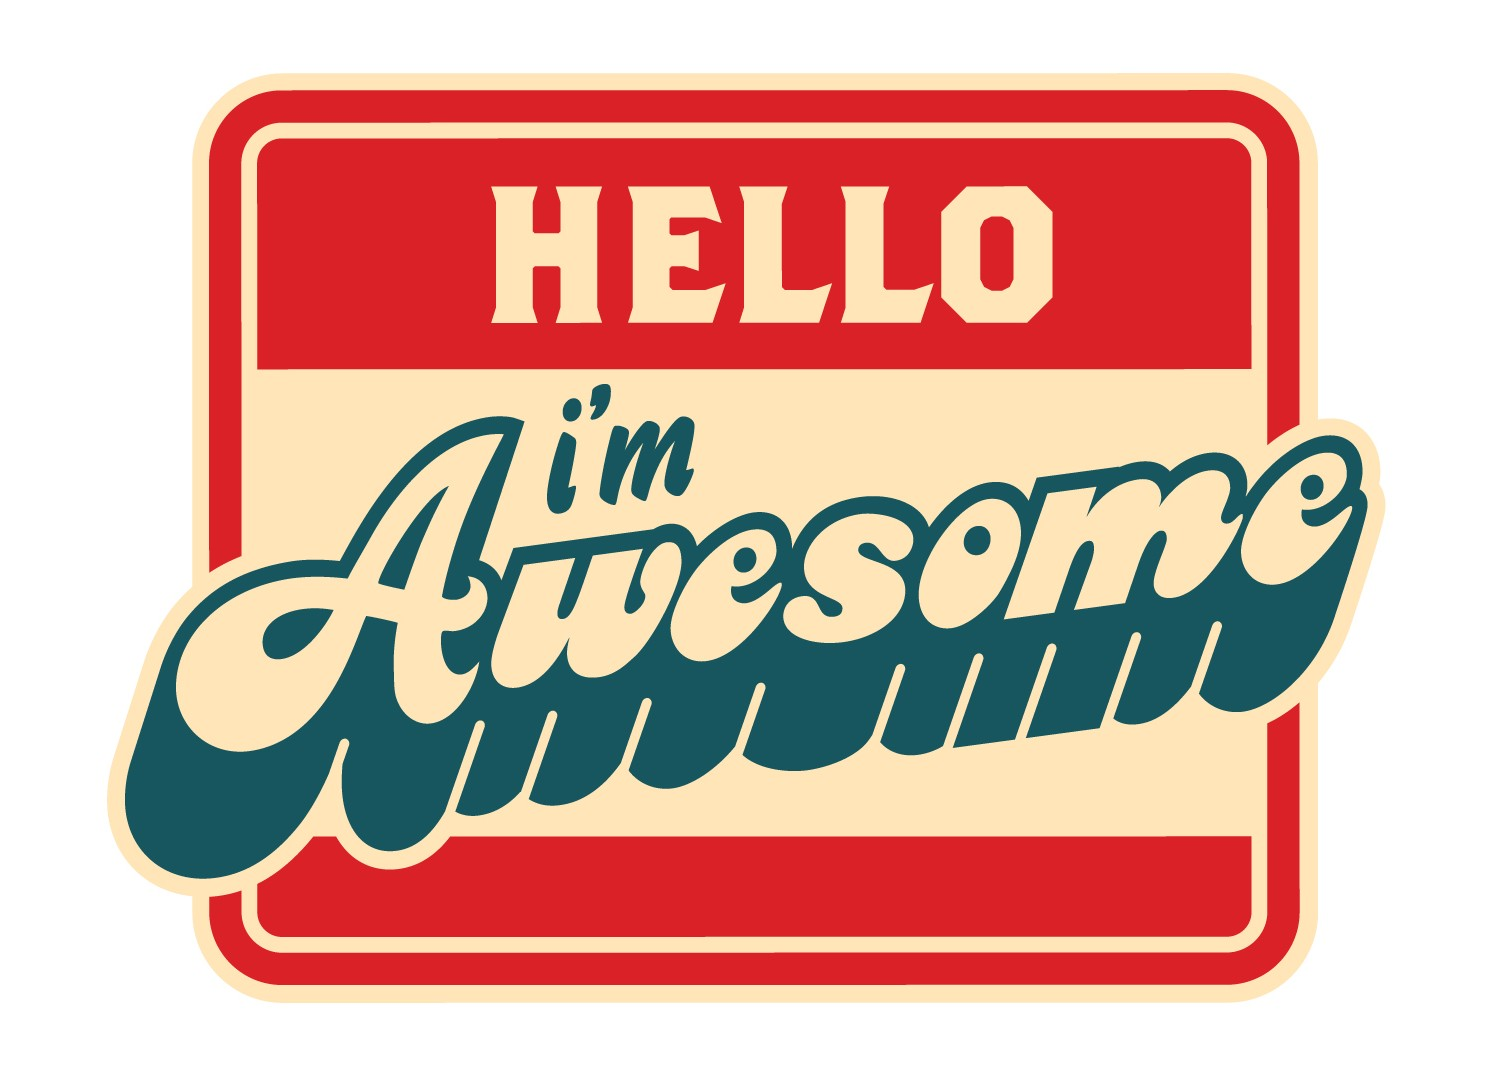 You're awesome ^_^